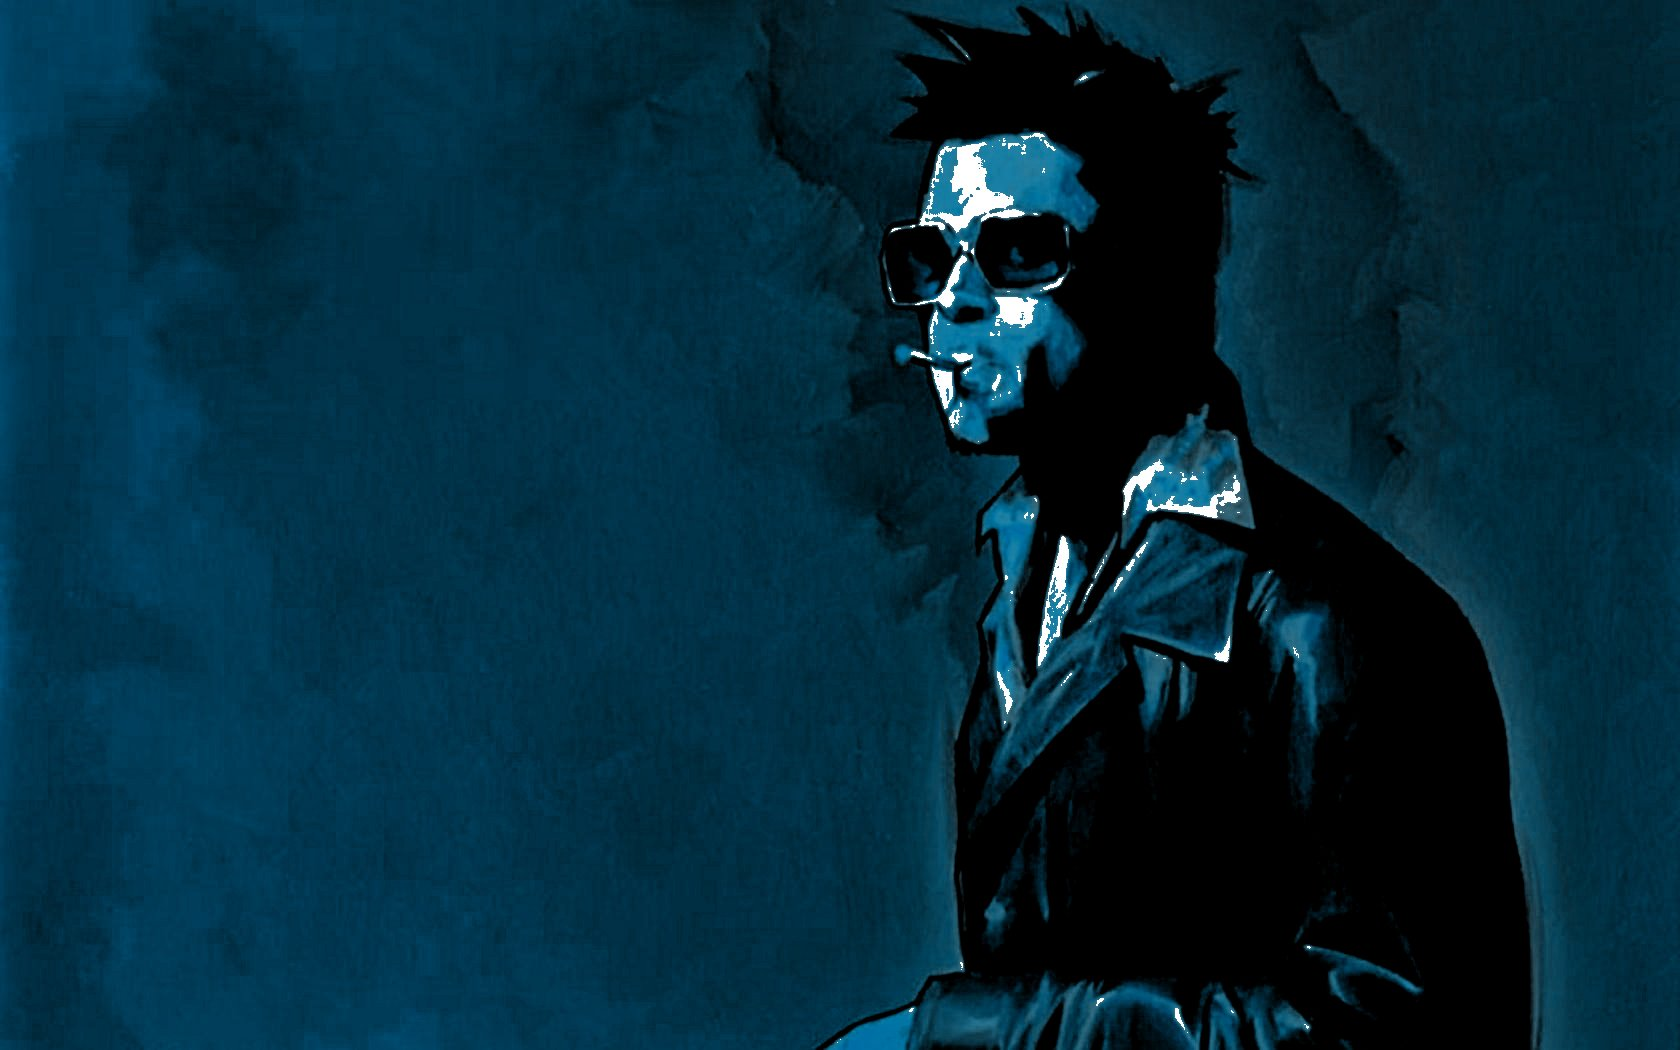 Tyler Durden Iphone Wallpaper Fight Club Wallpaper 1680x1050 294451 Wallpaperup